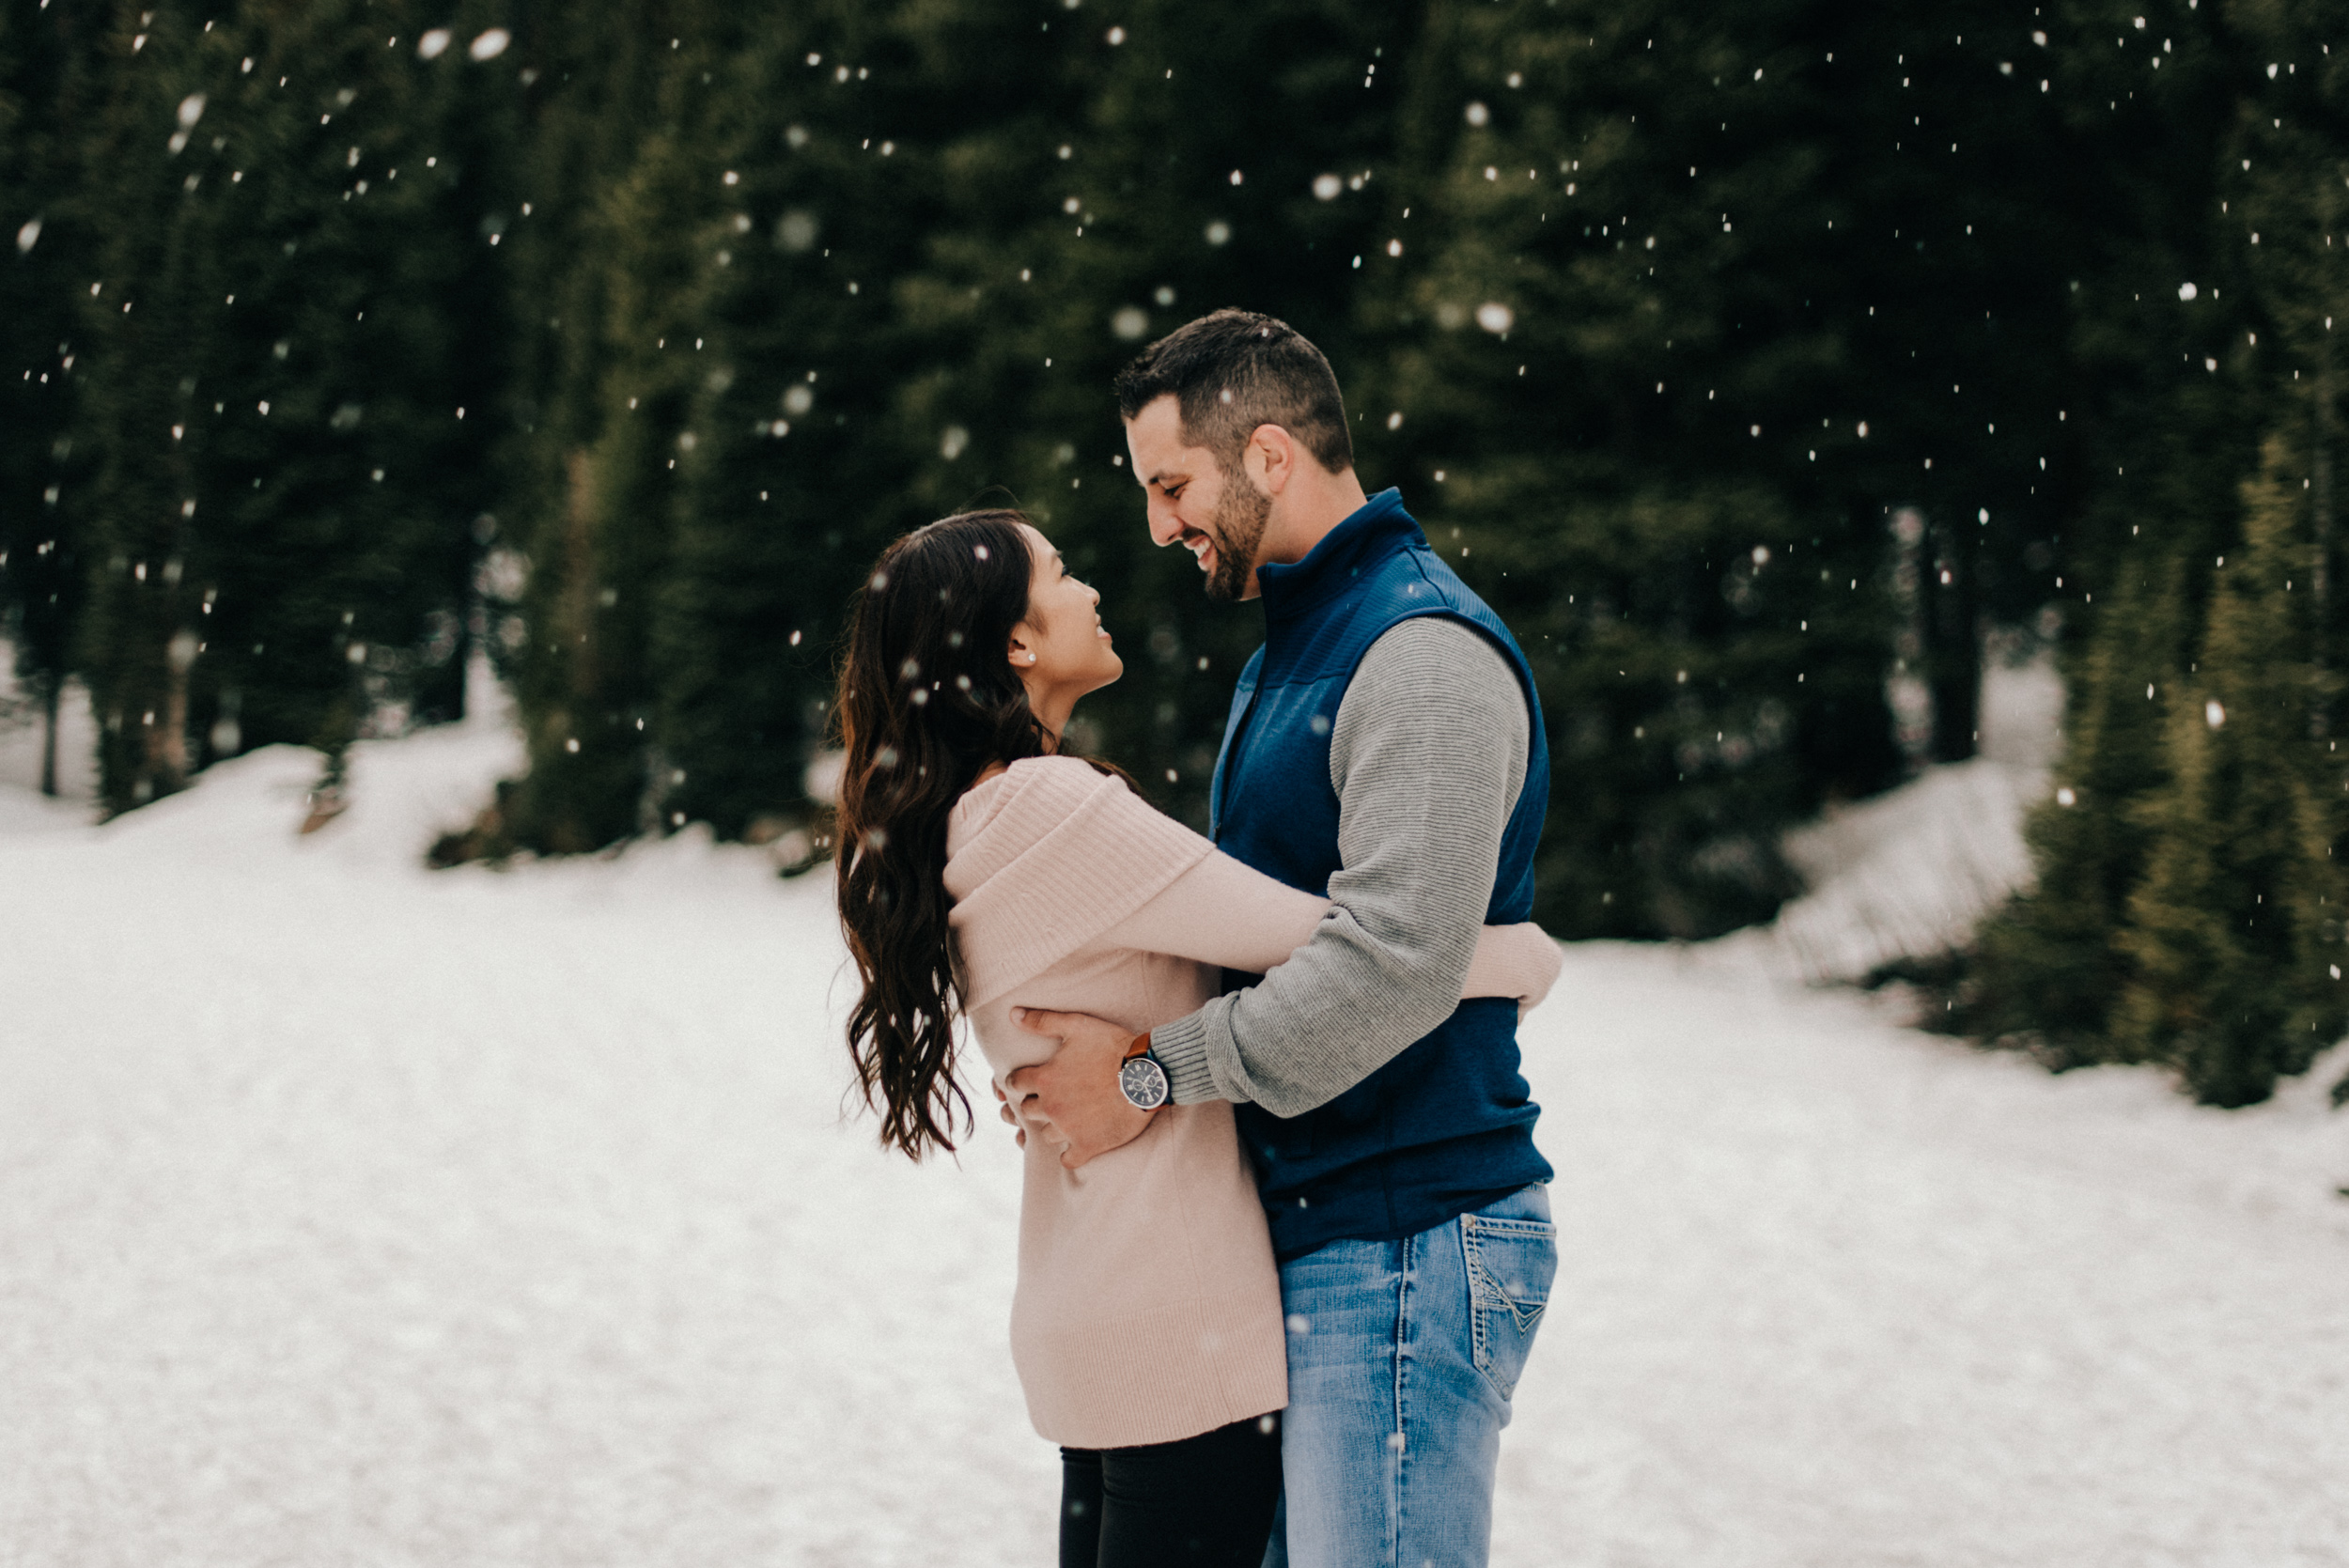 Steve and Celina being intimate under the snow.